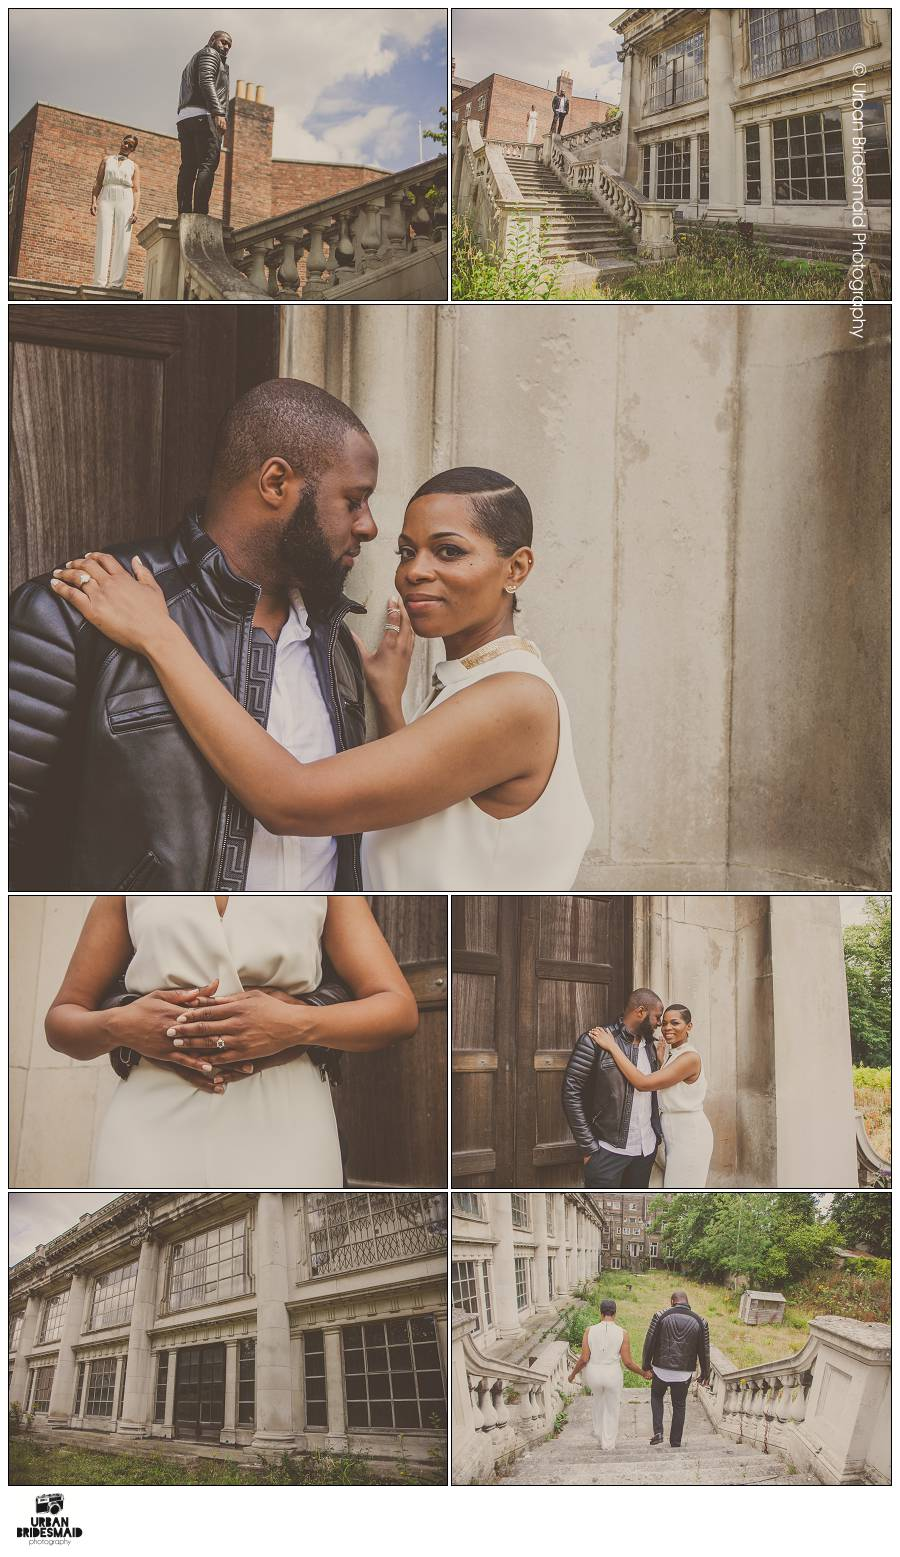 11_st_dunstan_the_east_engagement_shoot Wedding Photography: Testimonials and Reviews